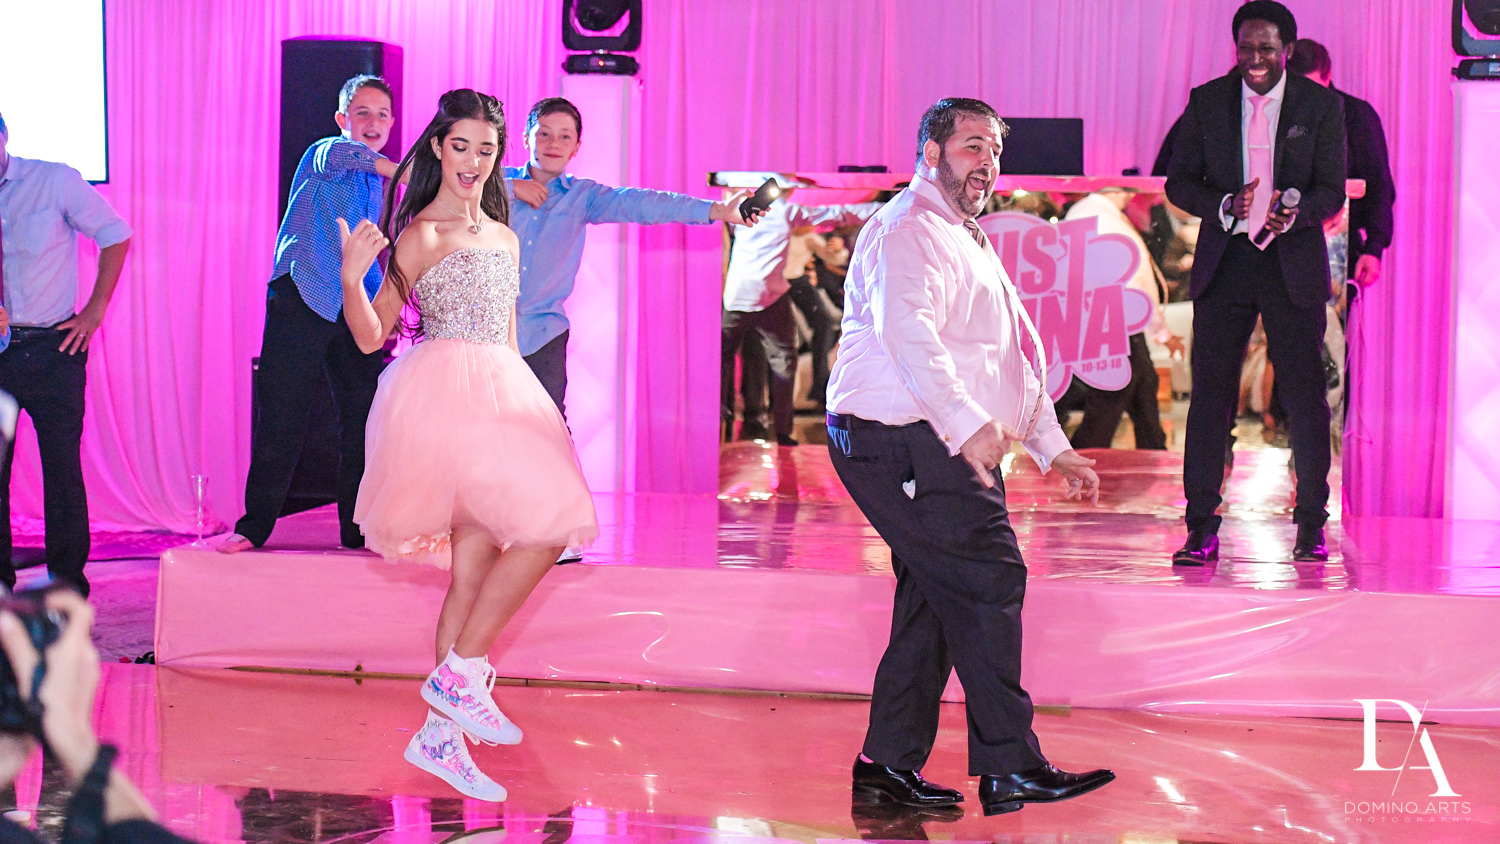 Fun father daughter dance at Bat Mitzvah at Saint Andrews Country Club South Florida by Domino Arts Photography